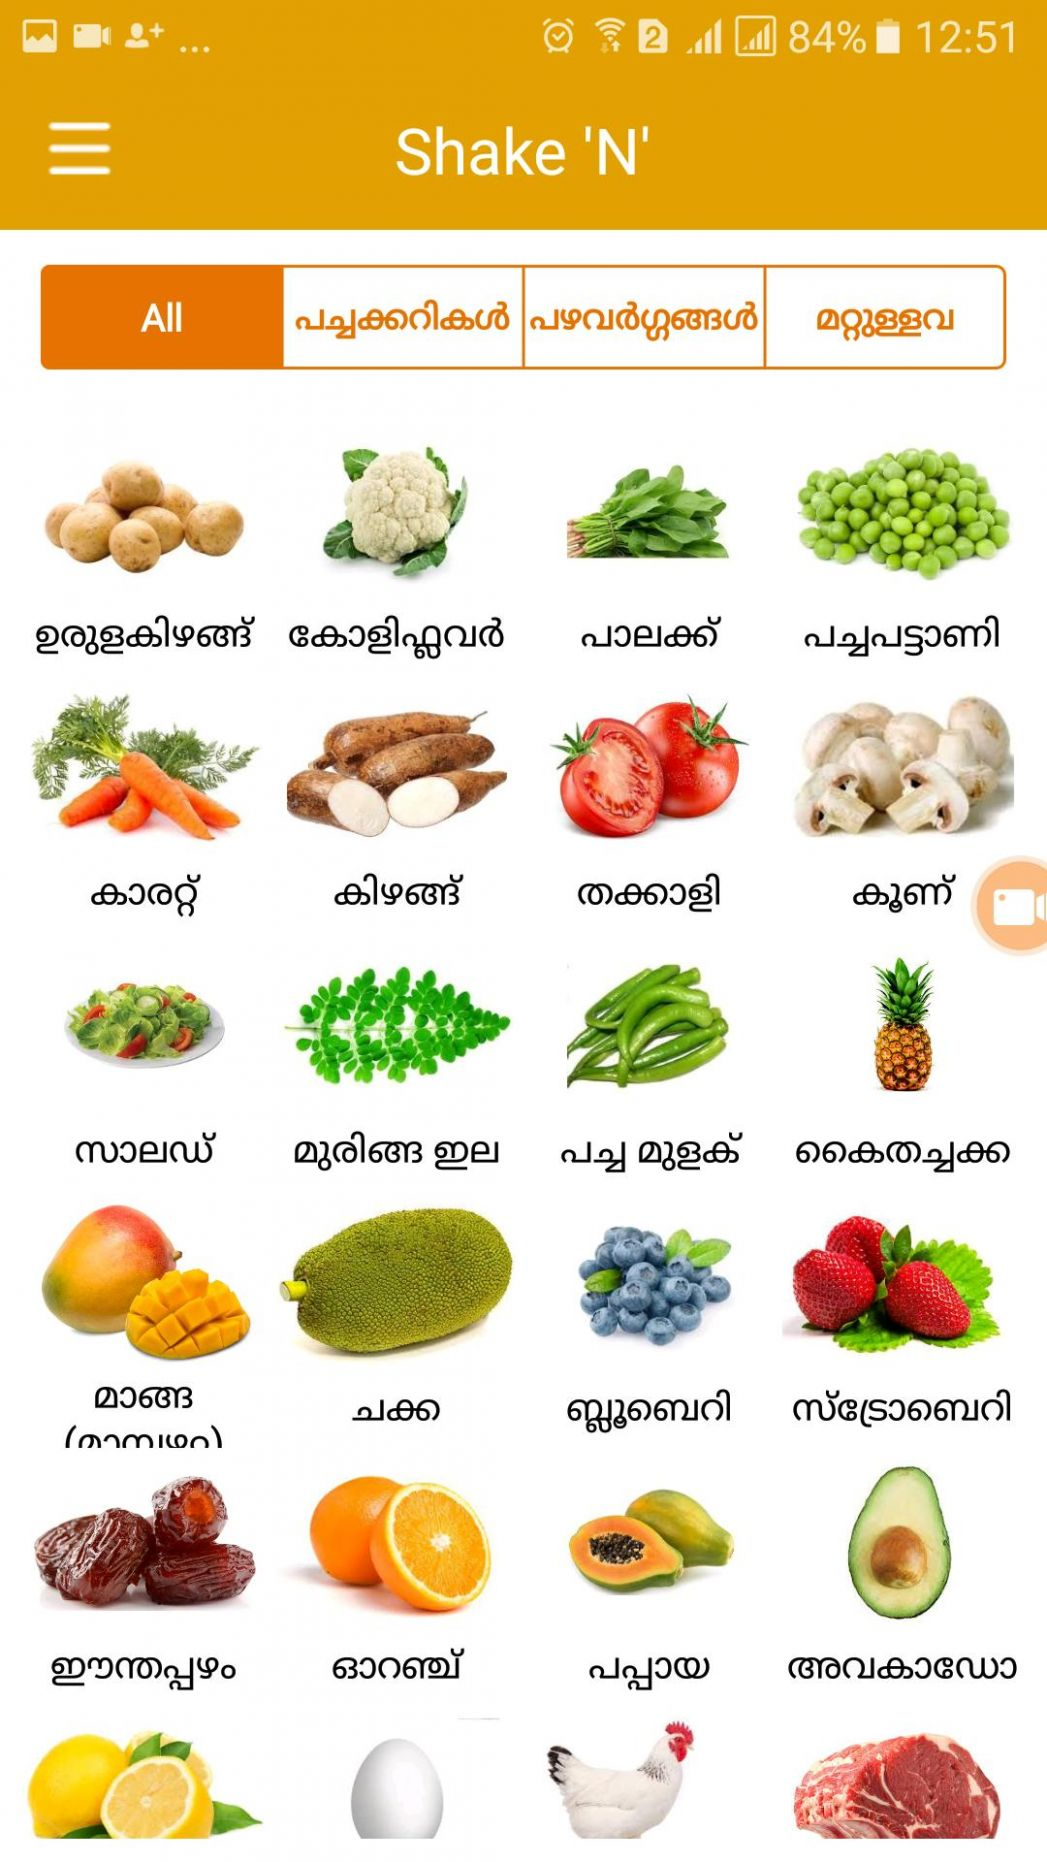 Kerala Food Recipes-Malayalam-English for Android - APK Download - Vegetable Recipes In Malayalam